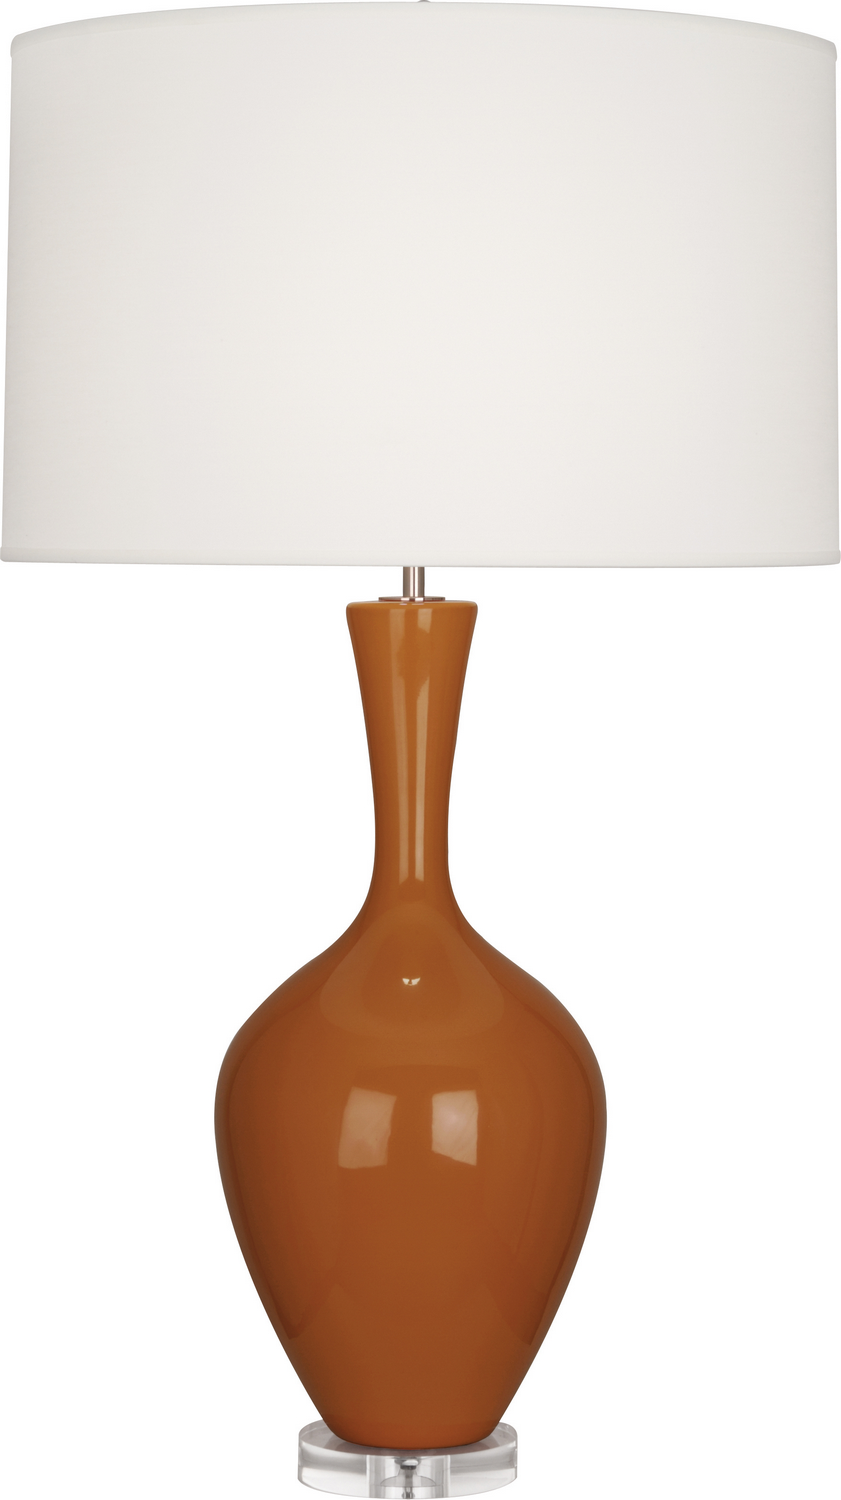 One Light Table Lamp From The Audrey Collection By Robert Abbey Cm980